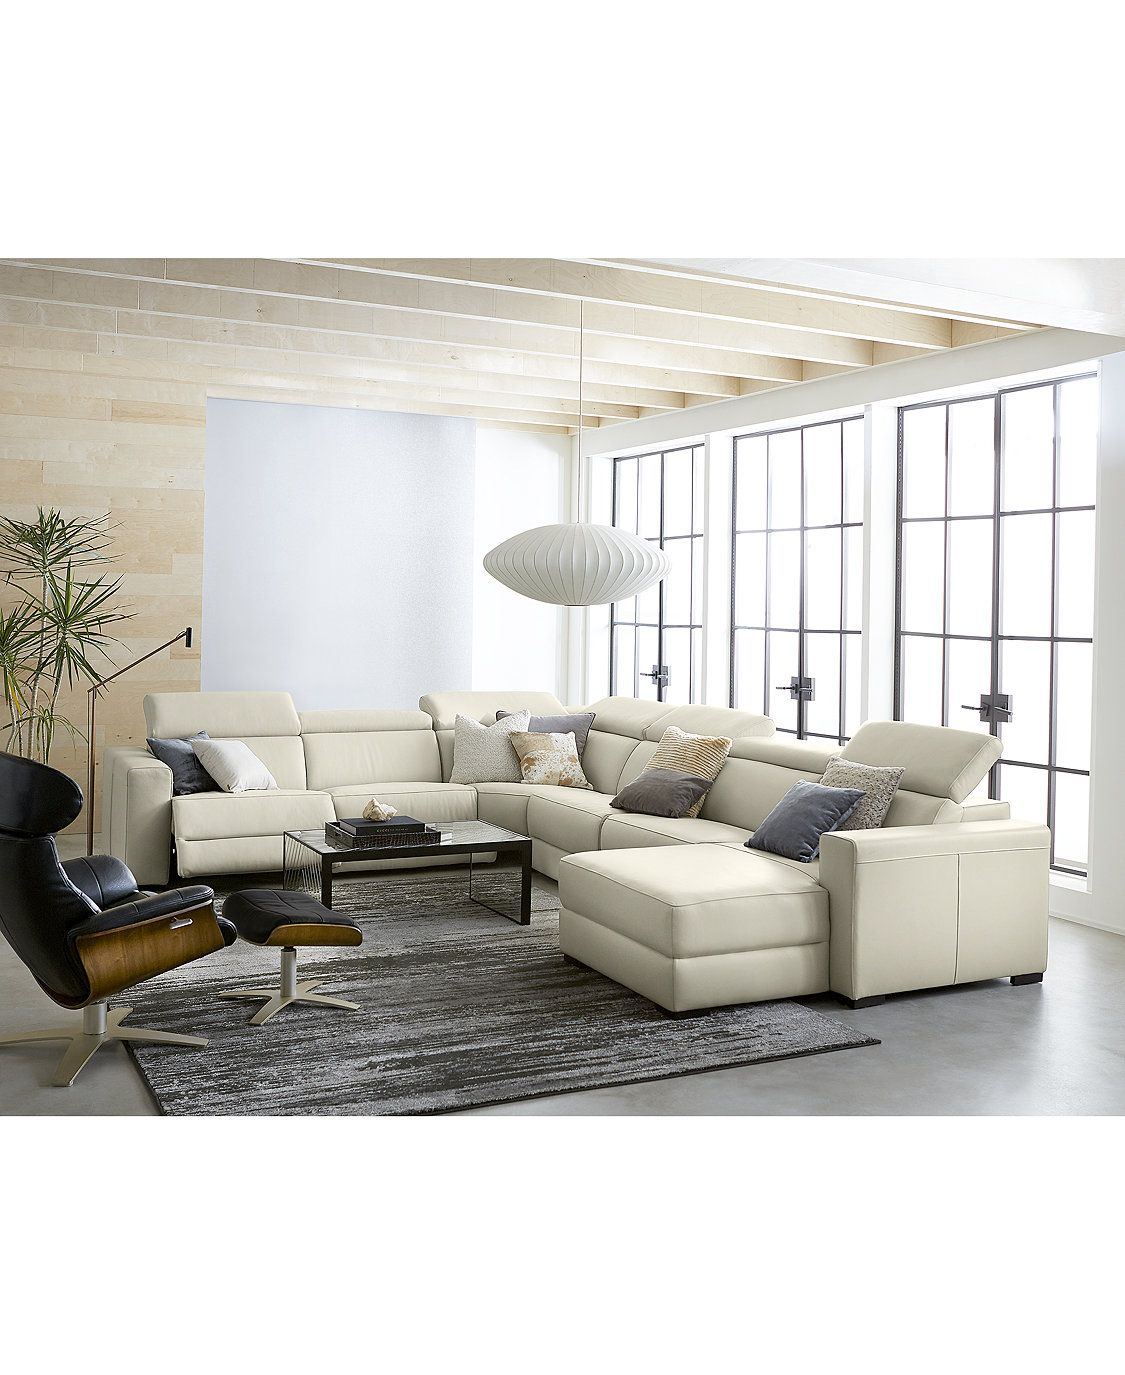 Nevio Leather Power Reclining Sectional Sofa With Articulating Headrests Collection Created For Macy S In 2020 Power Reclining Sectional Sofa Sectional Sofa With Recliner Reclining Sectional